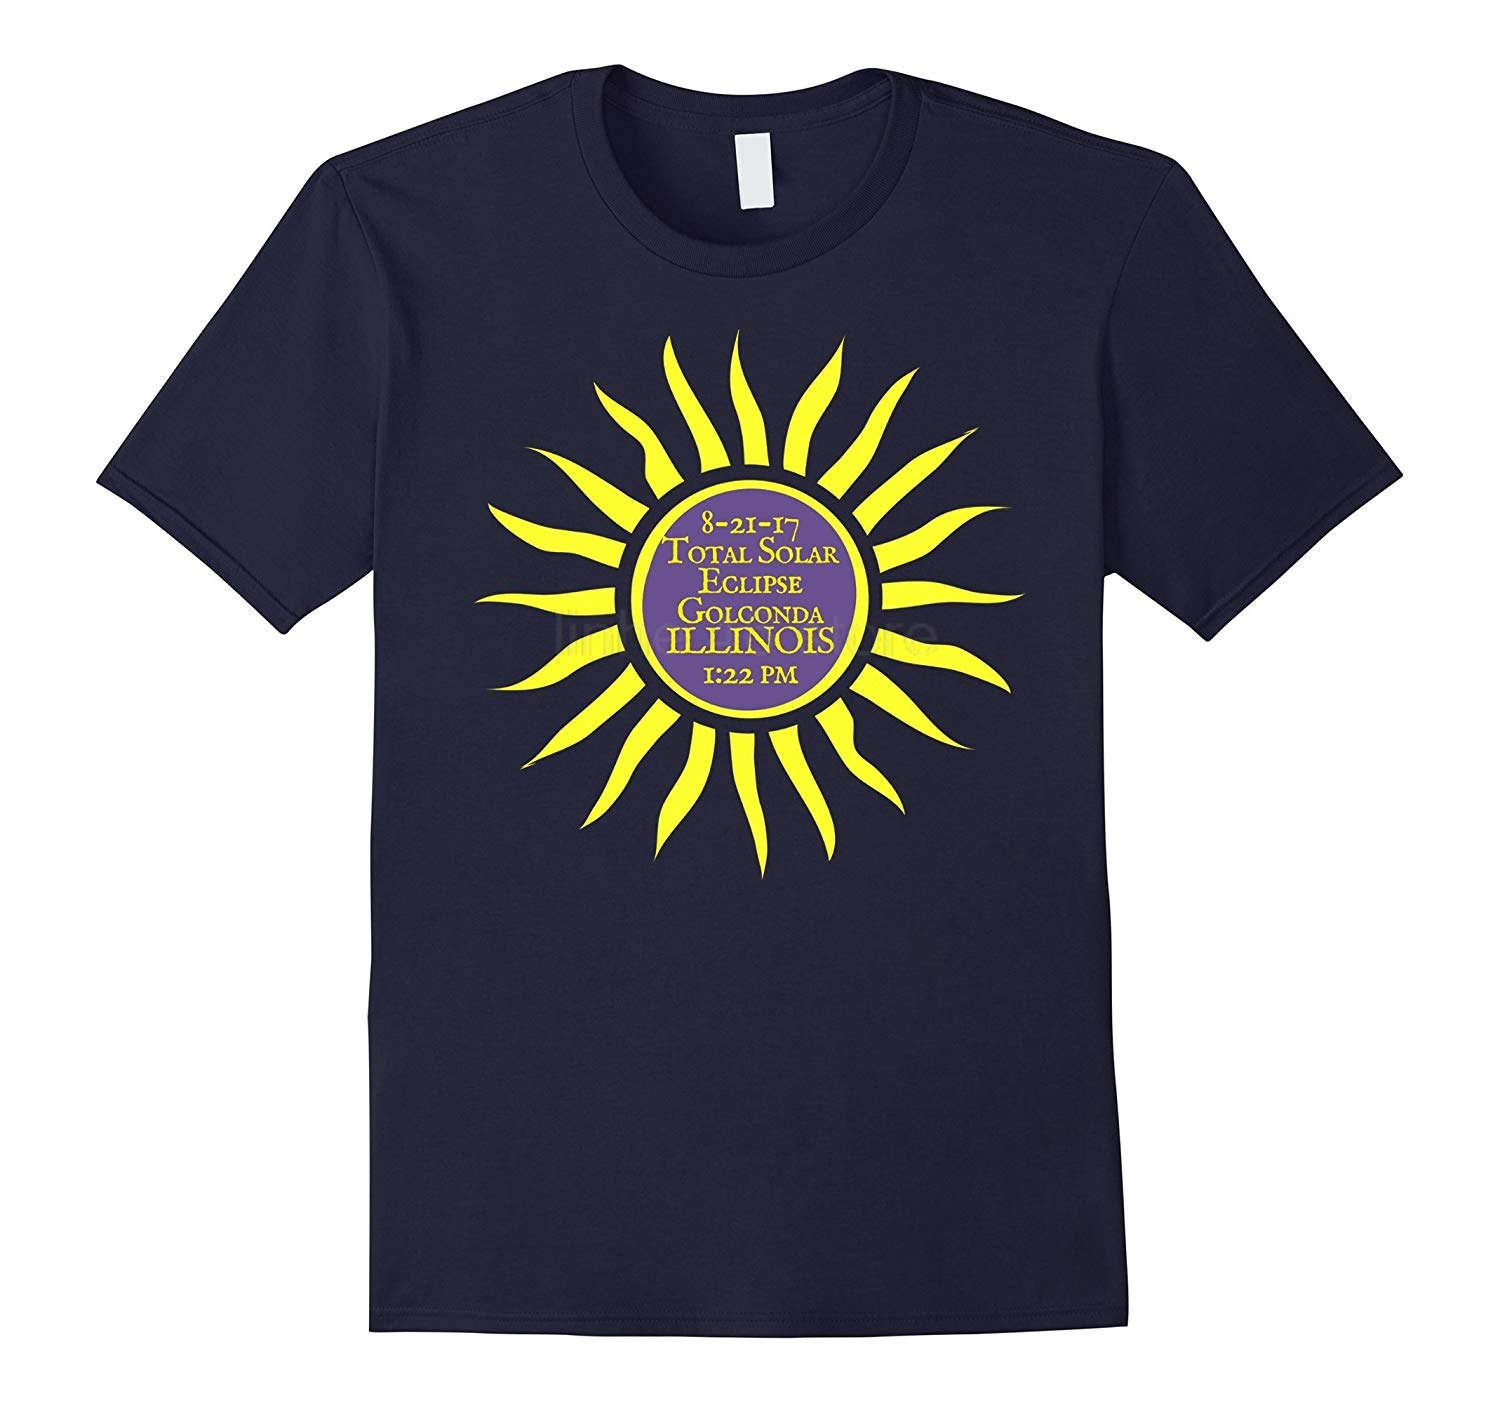 Golconda <font><b>Illinois</b></font> Total Solar Eclipse T-Shirt, Sun Tee New 2019 Summer Style Casual Wear image